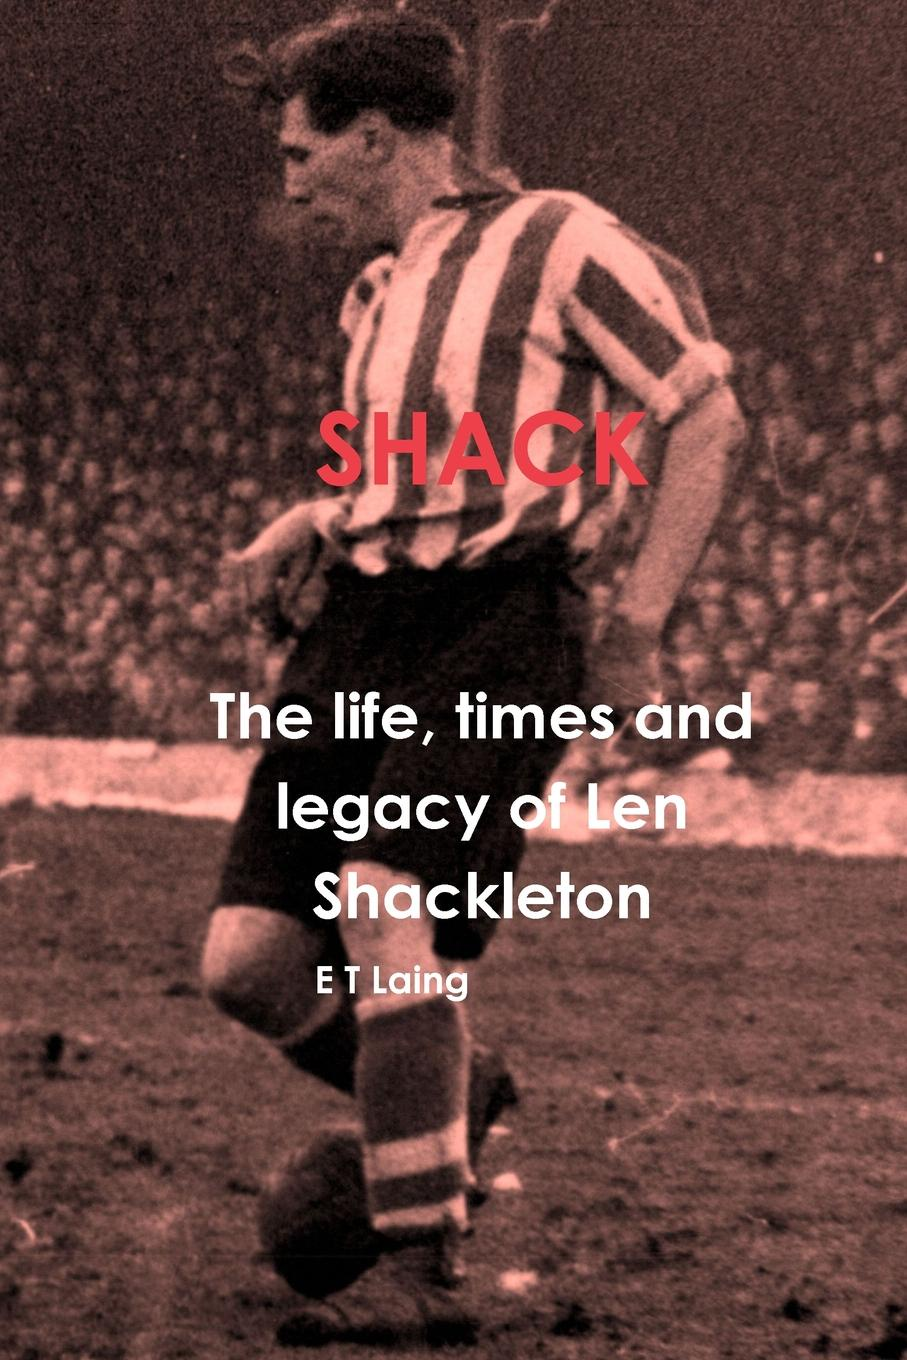 E T Laing Shack. the life, times and legacy of Len Shackleton